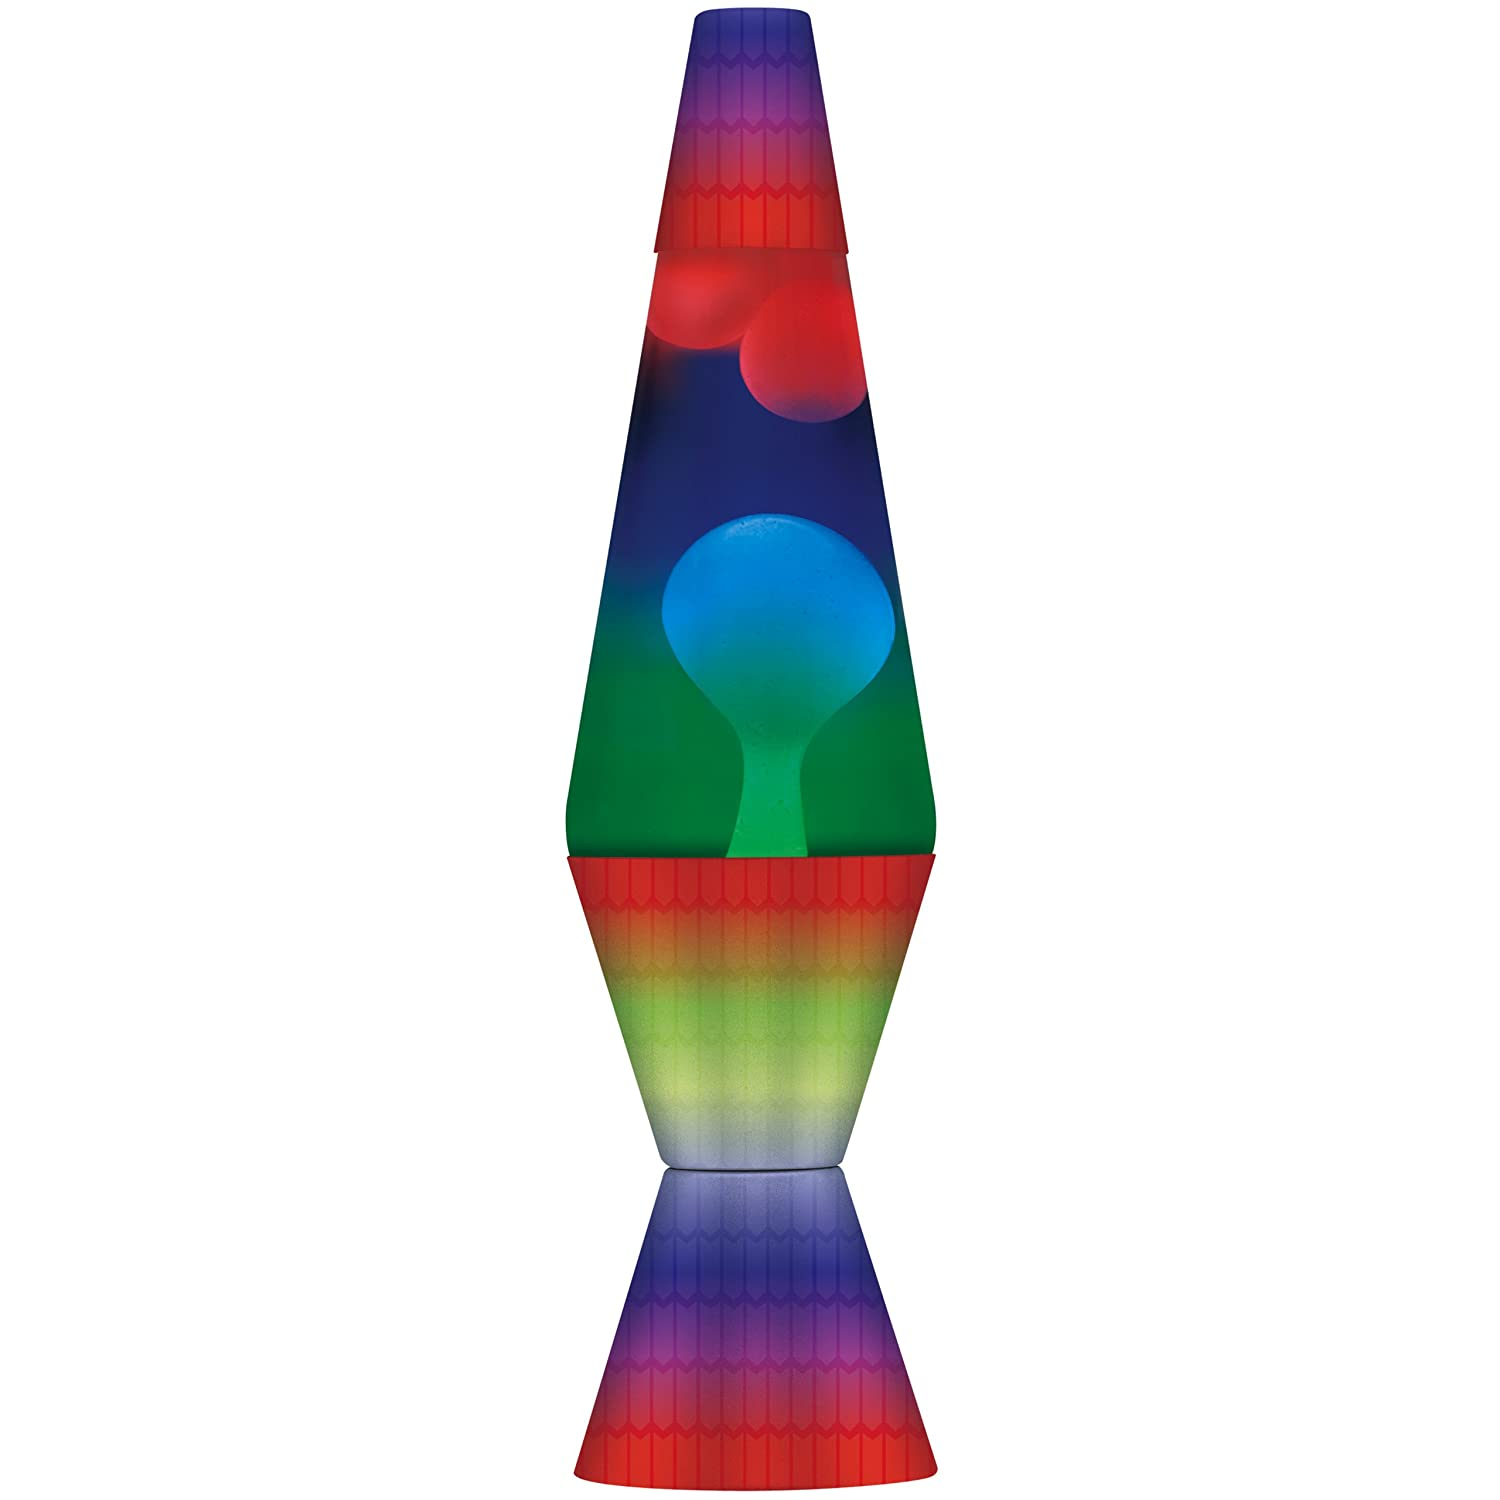 Details about ORIGINAL New Lava Lite 2140 Rainbow Print Lava Lamp with ...